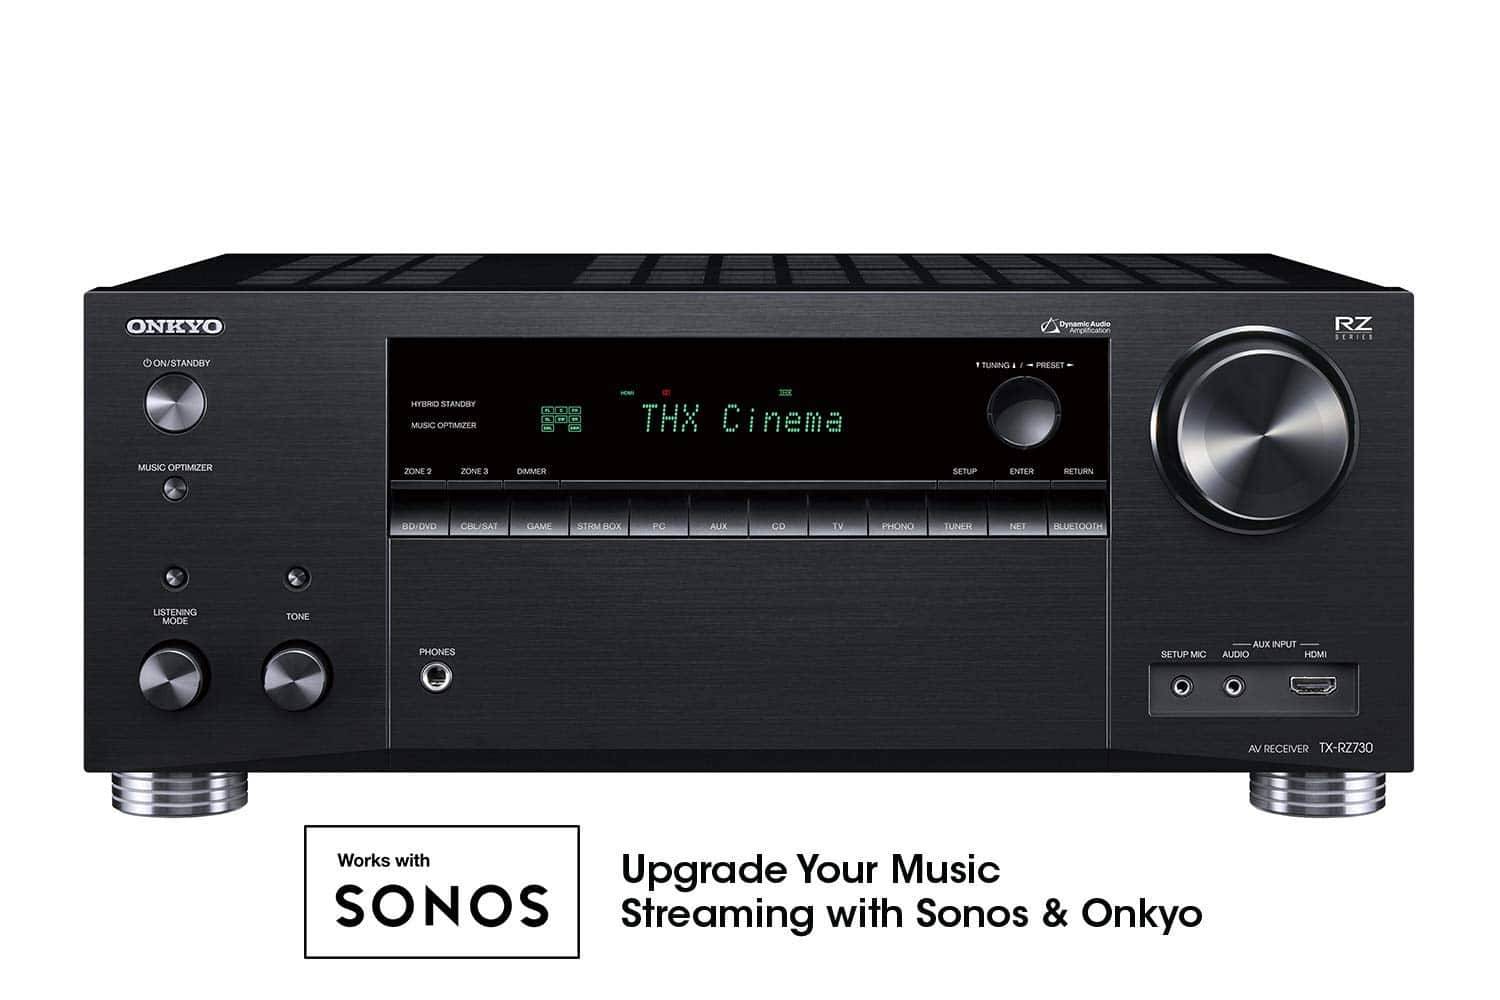 Onkyo TX-RZ730 9.2 Channel 4k Network A/V Receiver Black $500 + Free Shipping